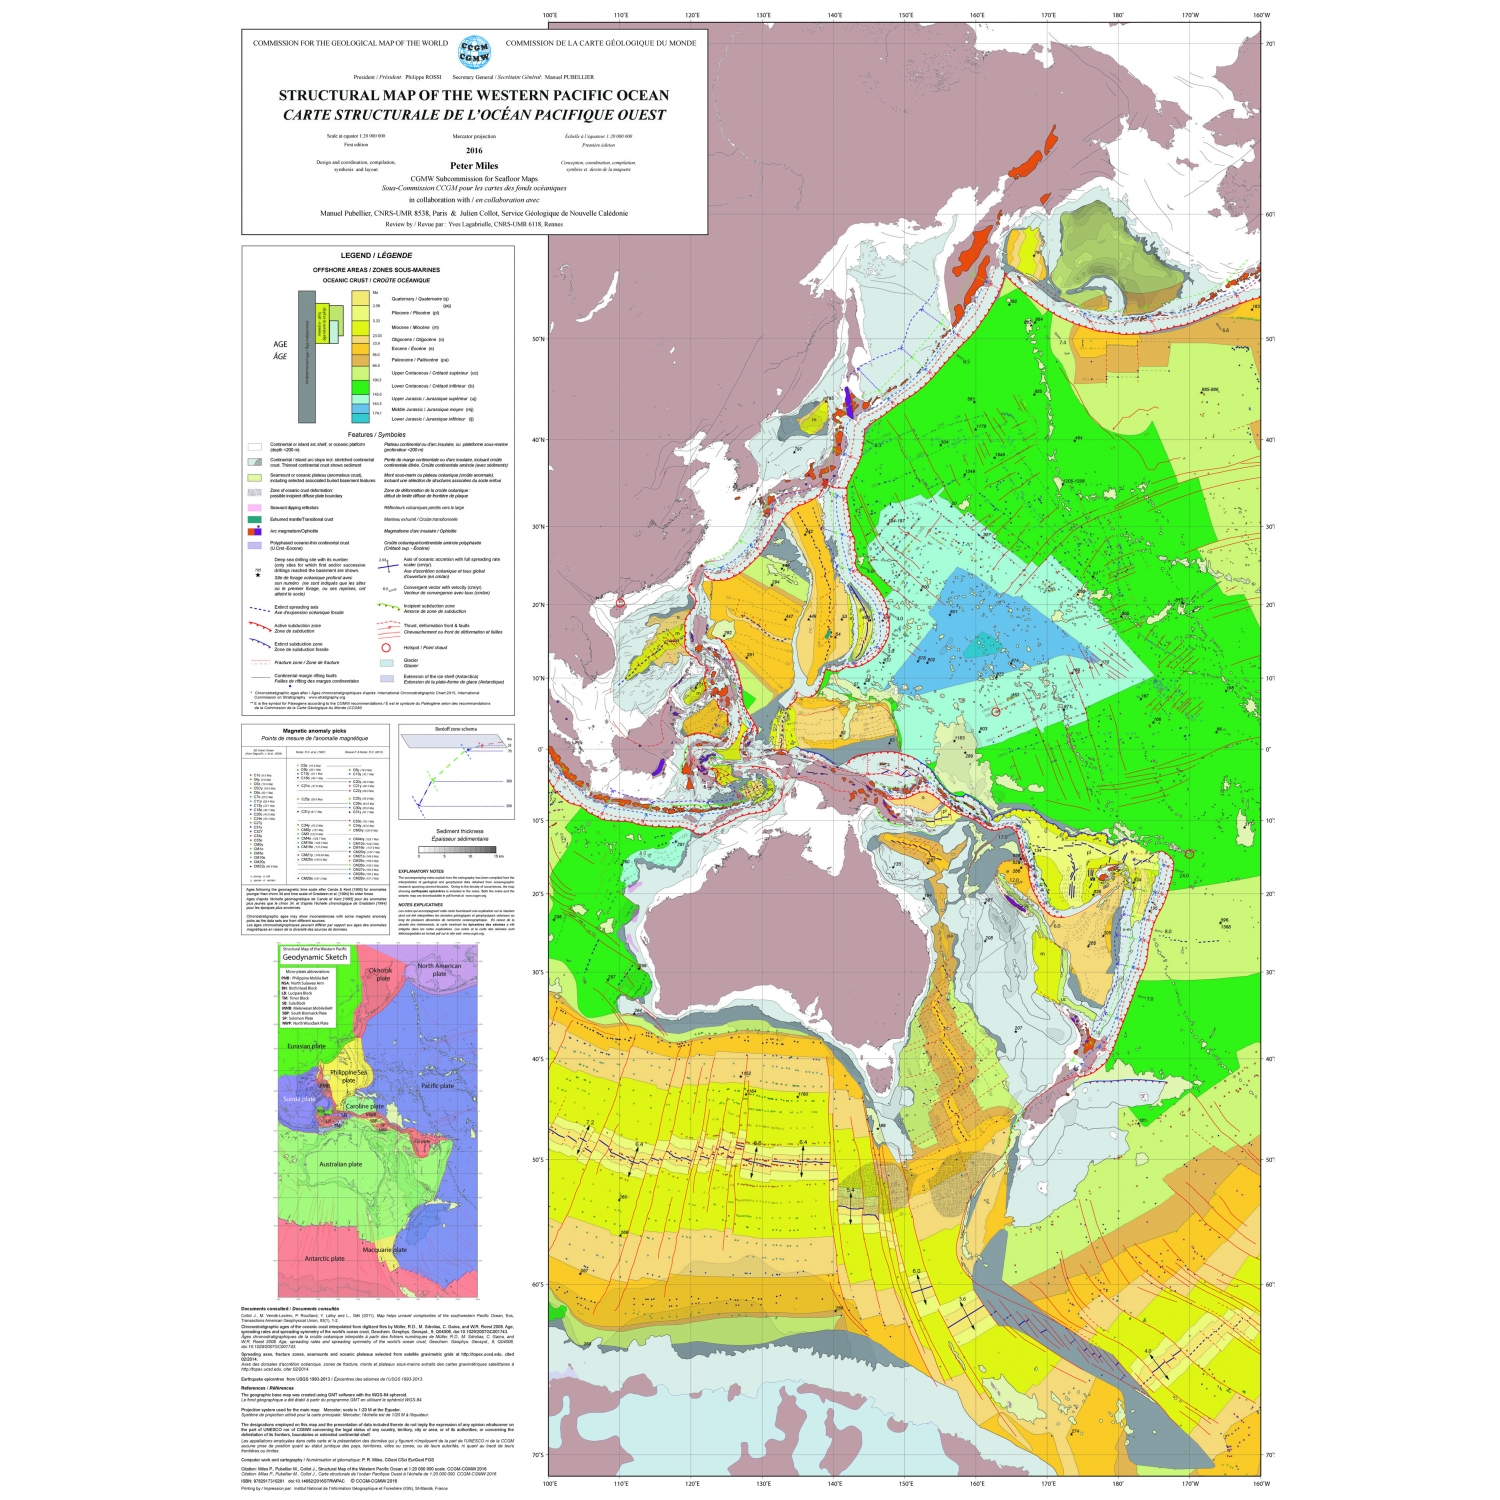 Structural map of the western pacific ocean ccgm cgmw view full size gumiabroncs Image collections